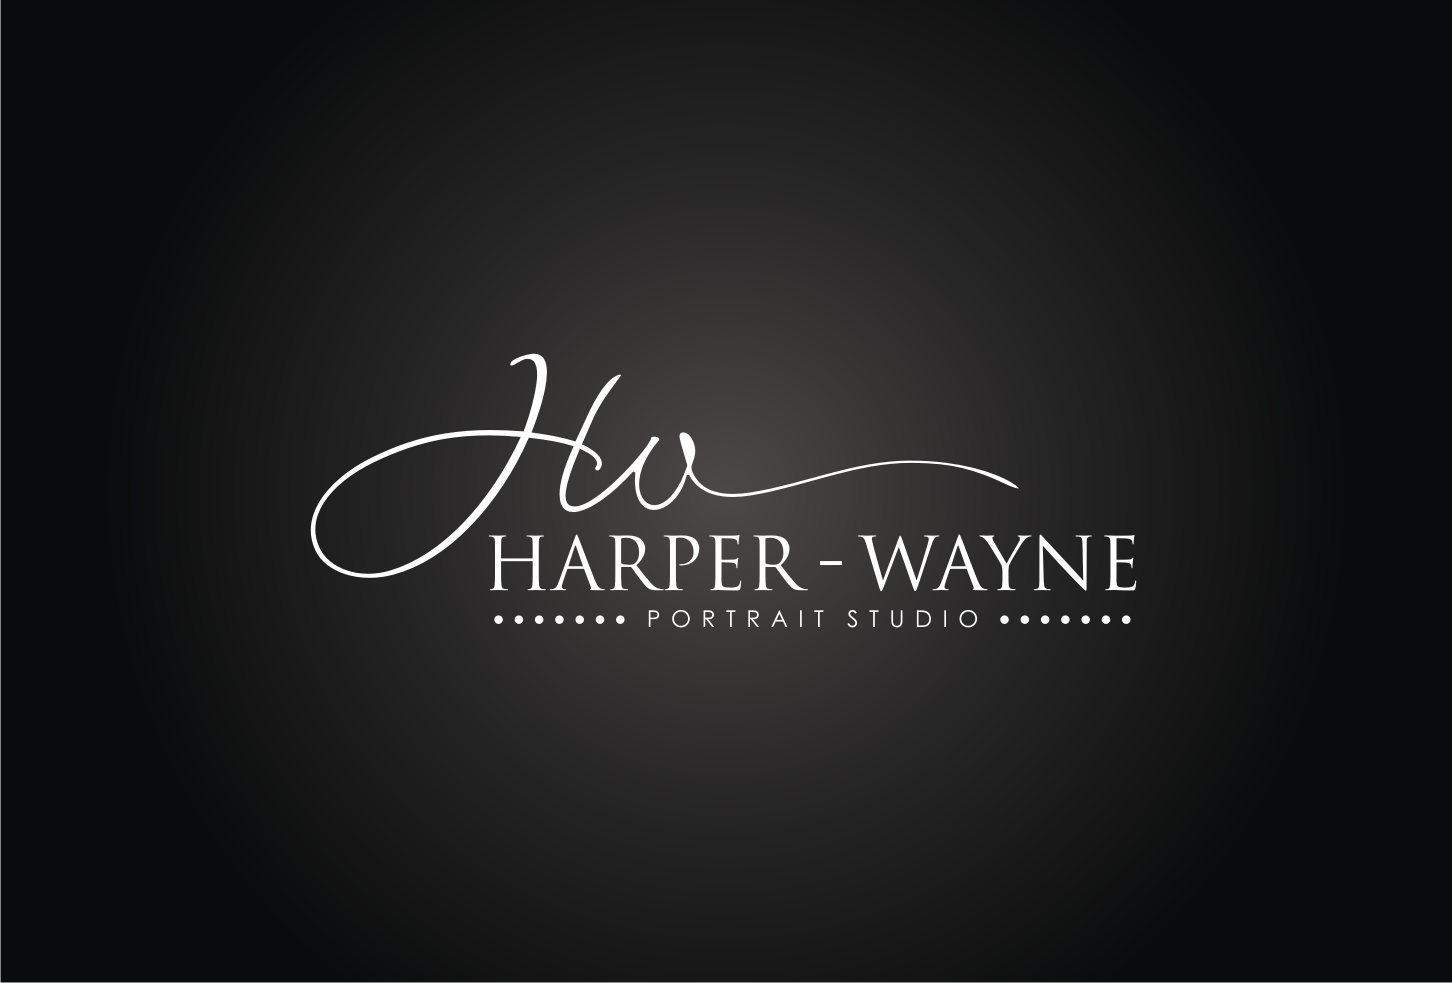 New logo wanted for Harper Wayne Portrait Studio